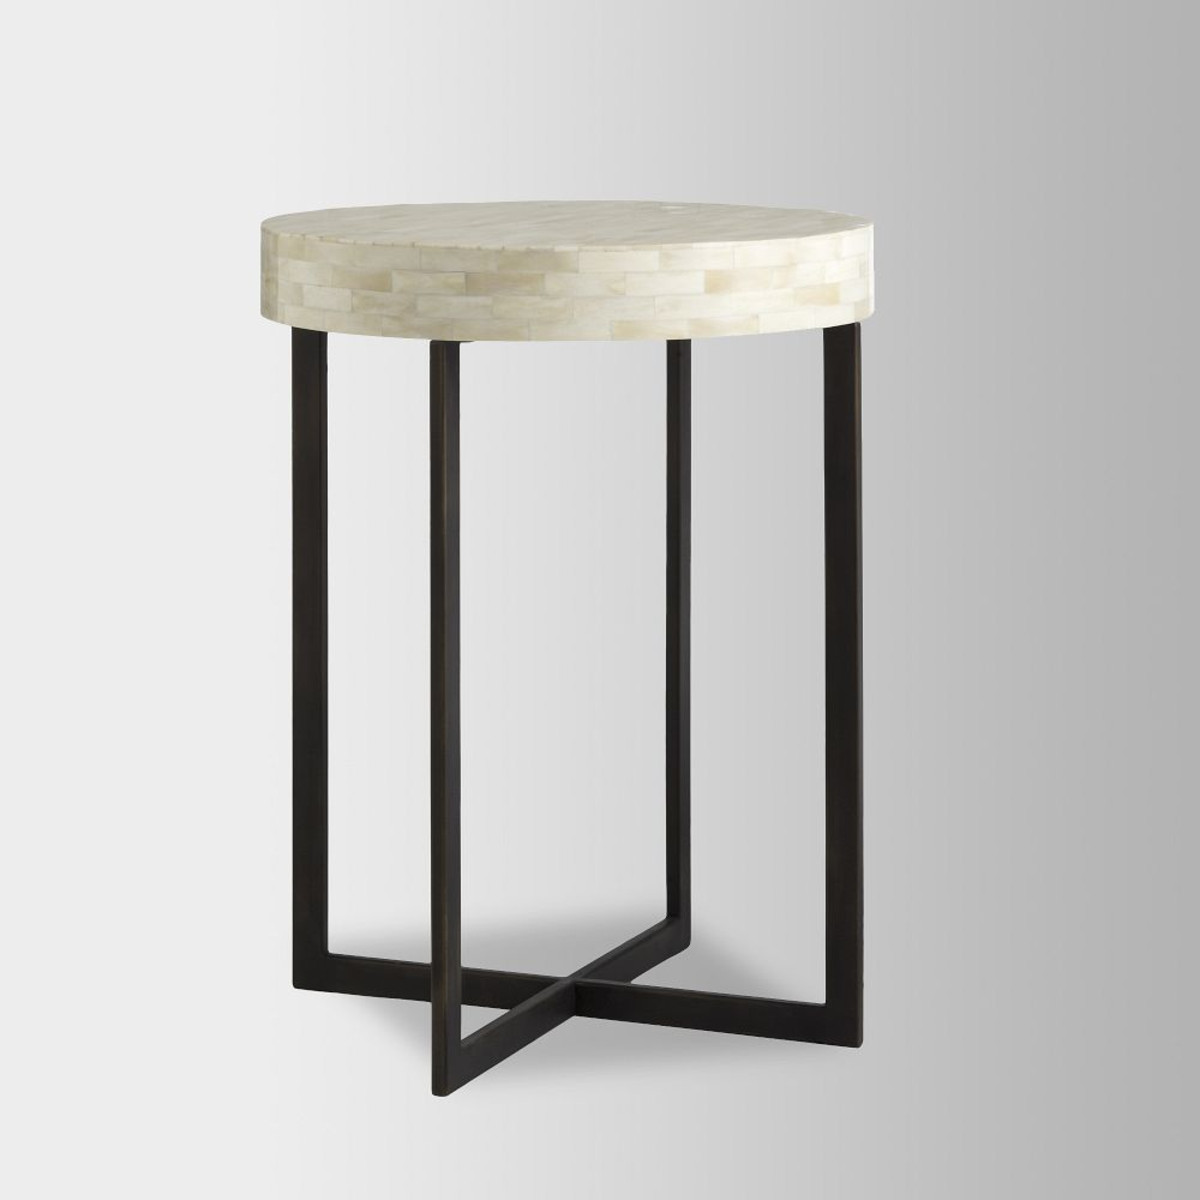 bone side table west elm media accent black bedside lighting seattle jcpenny bedding dale tiffany hummingbird lamp jcpenney kitchen curtains ceramic ginger jar lamps half wall